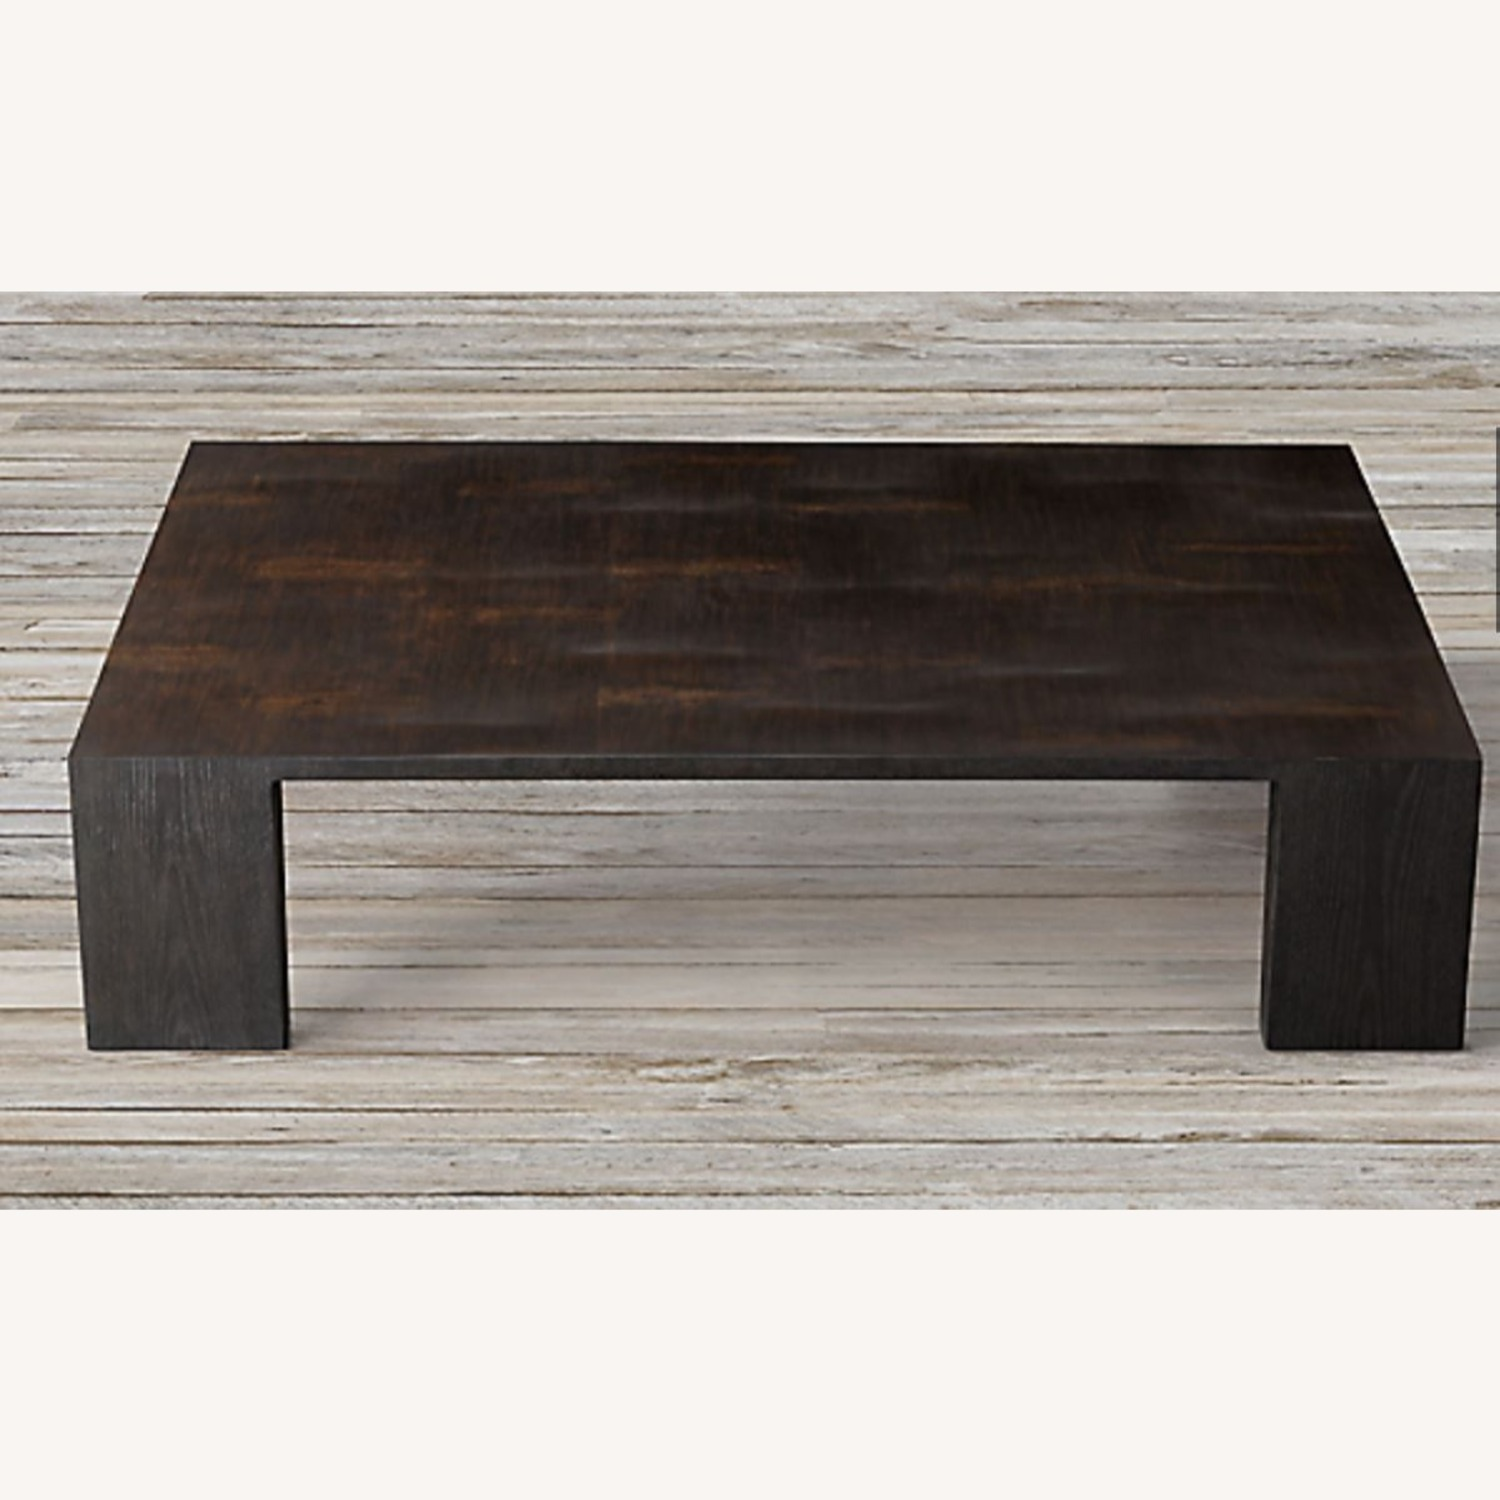 Restoration Hardware Wyeth Bamboo Rectangle Coffee Table - image-1